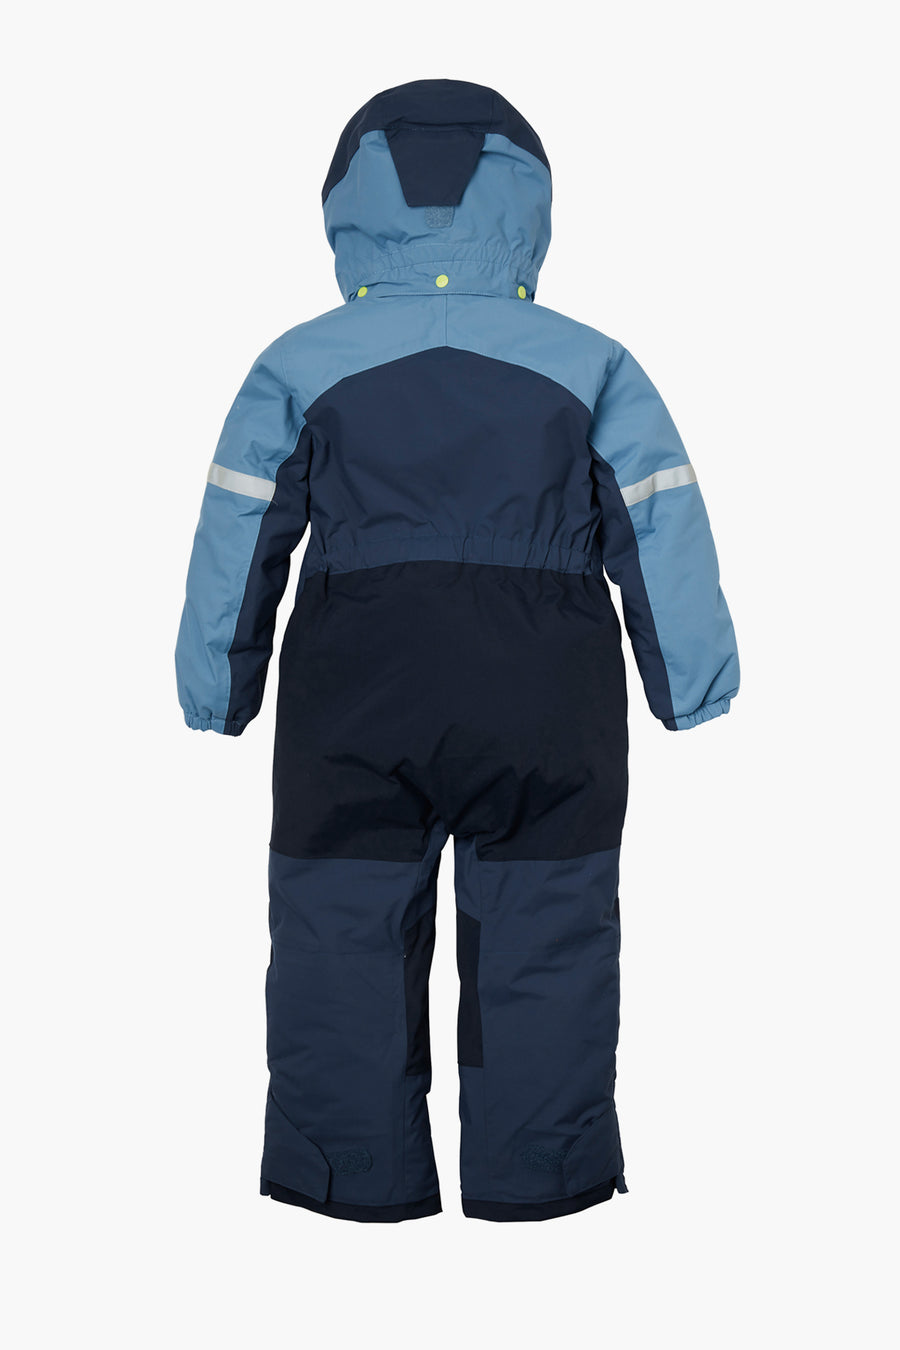 Helly Hansen Legend Snowsuit - North Sea Blue